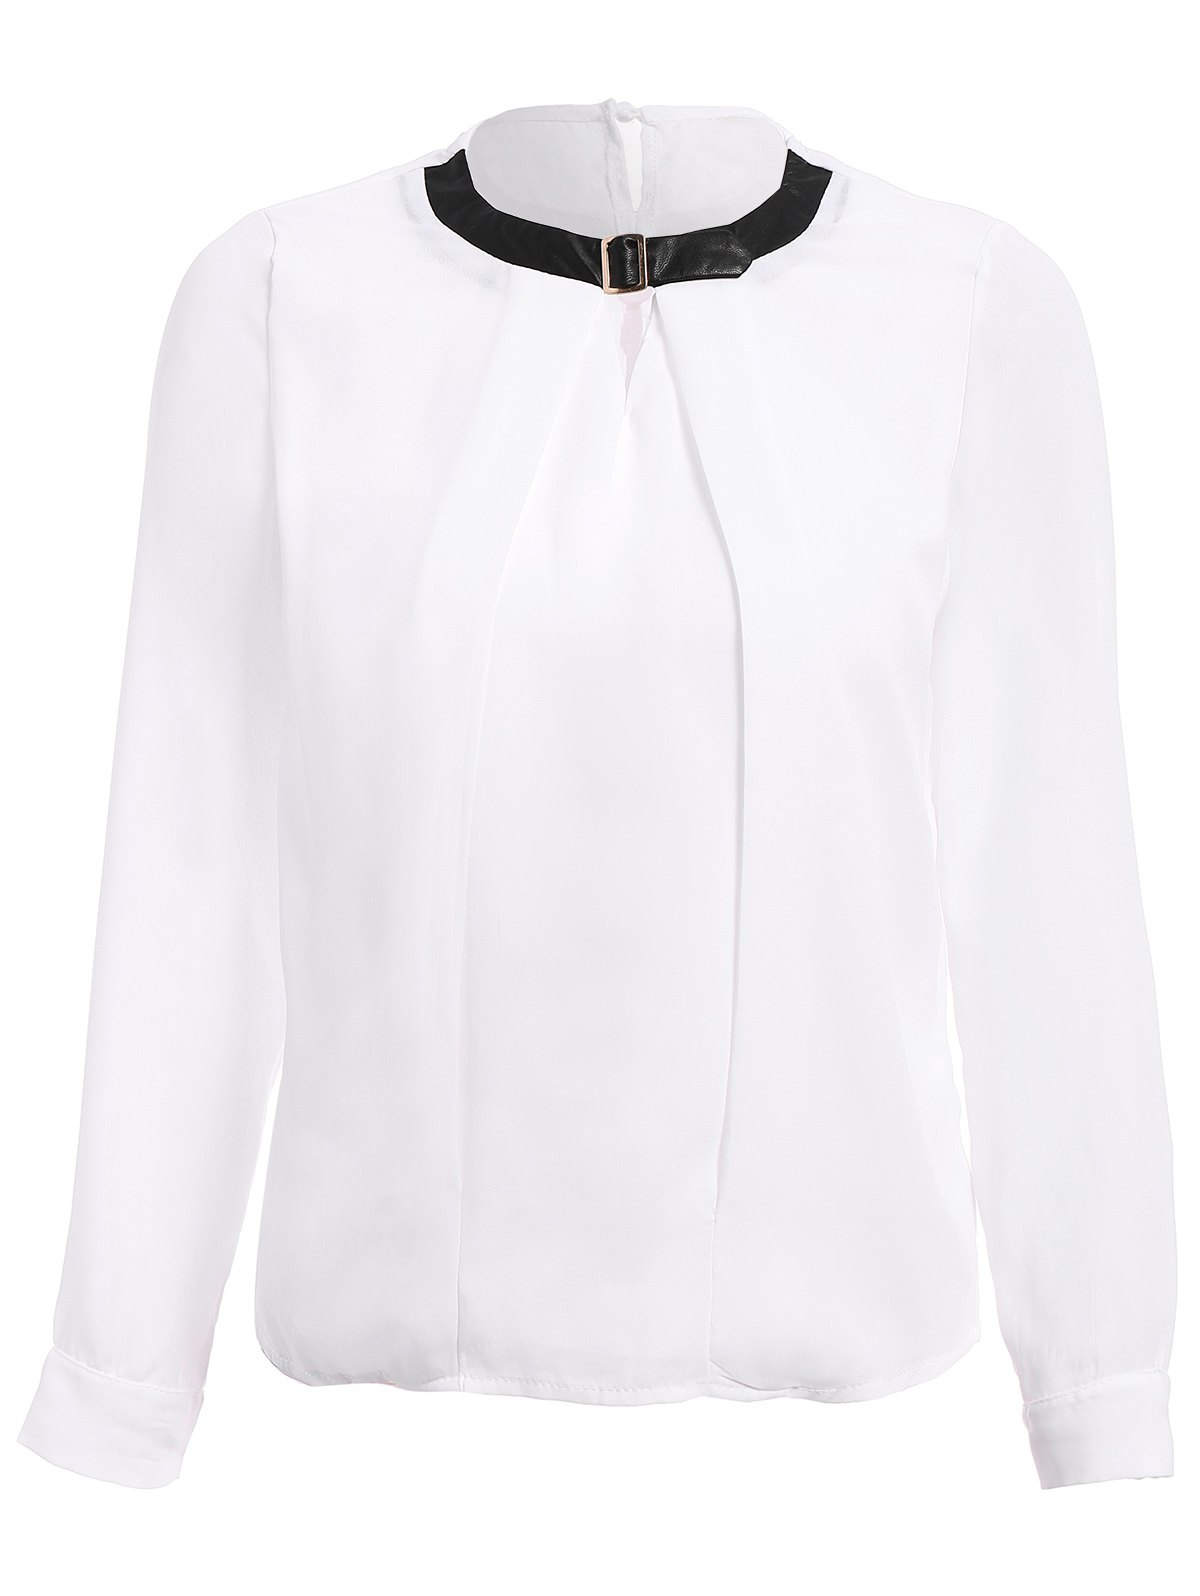 Chic Stylish PU Collar Long Sleeve Hollow Out Blouse For Women